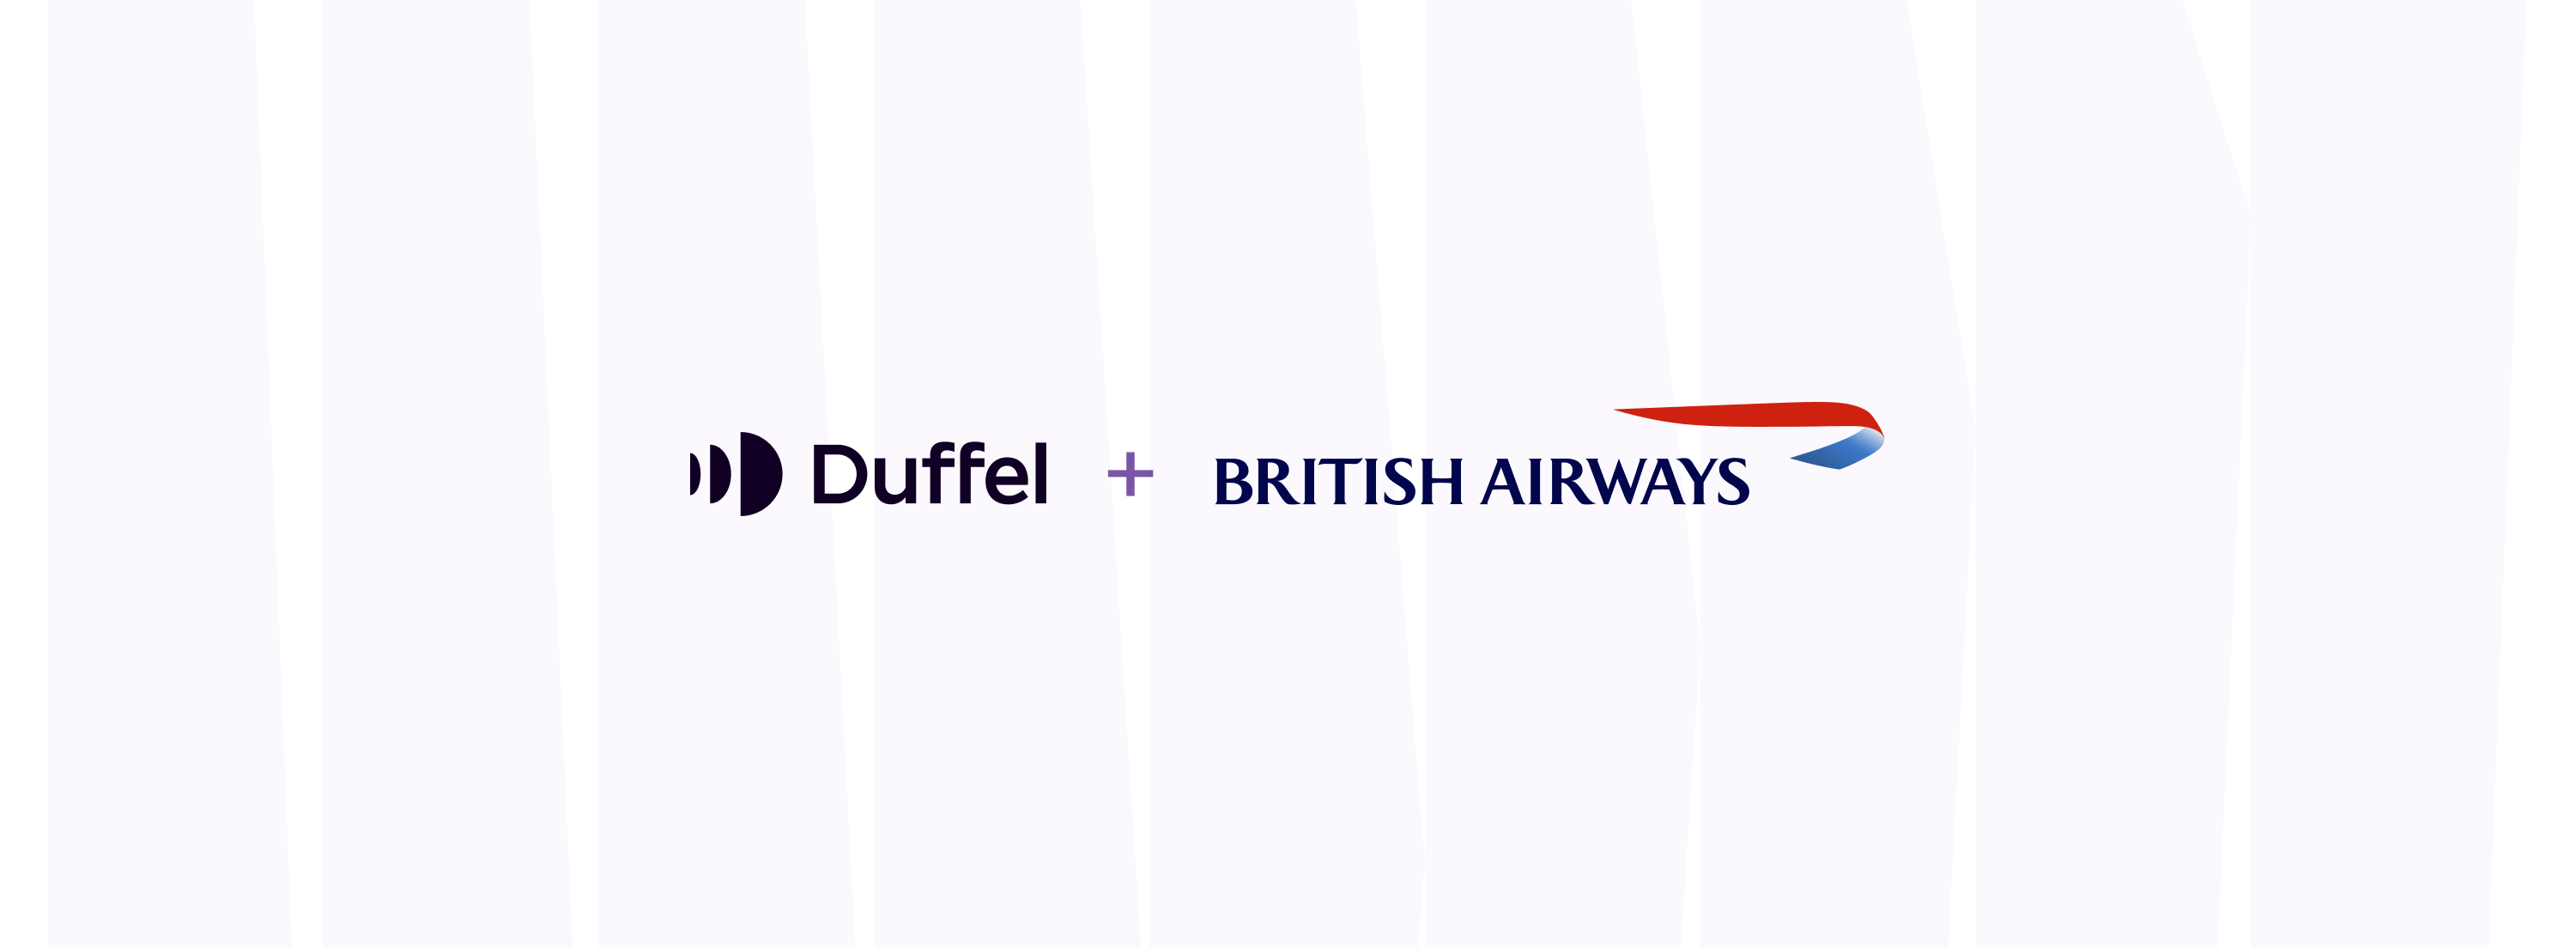 British Airways' new Select and Select Pro fare brands are available through Duffel